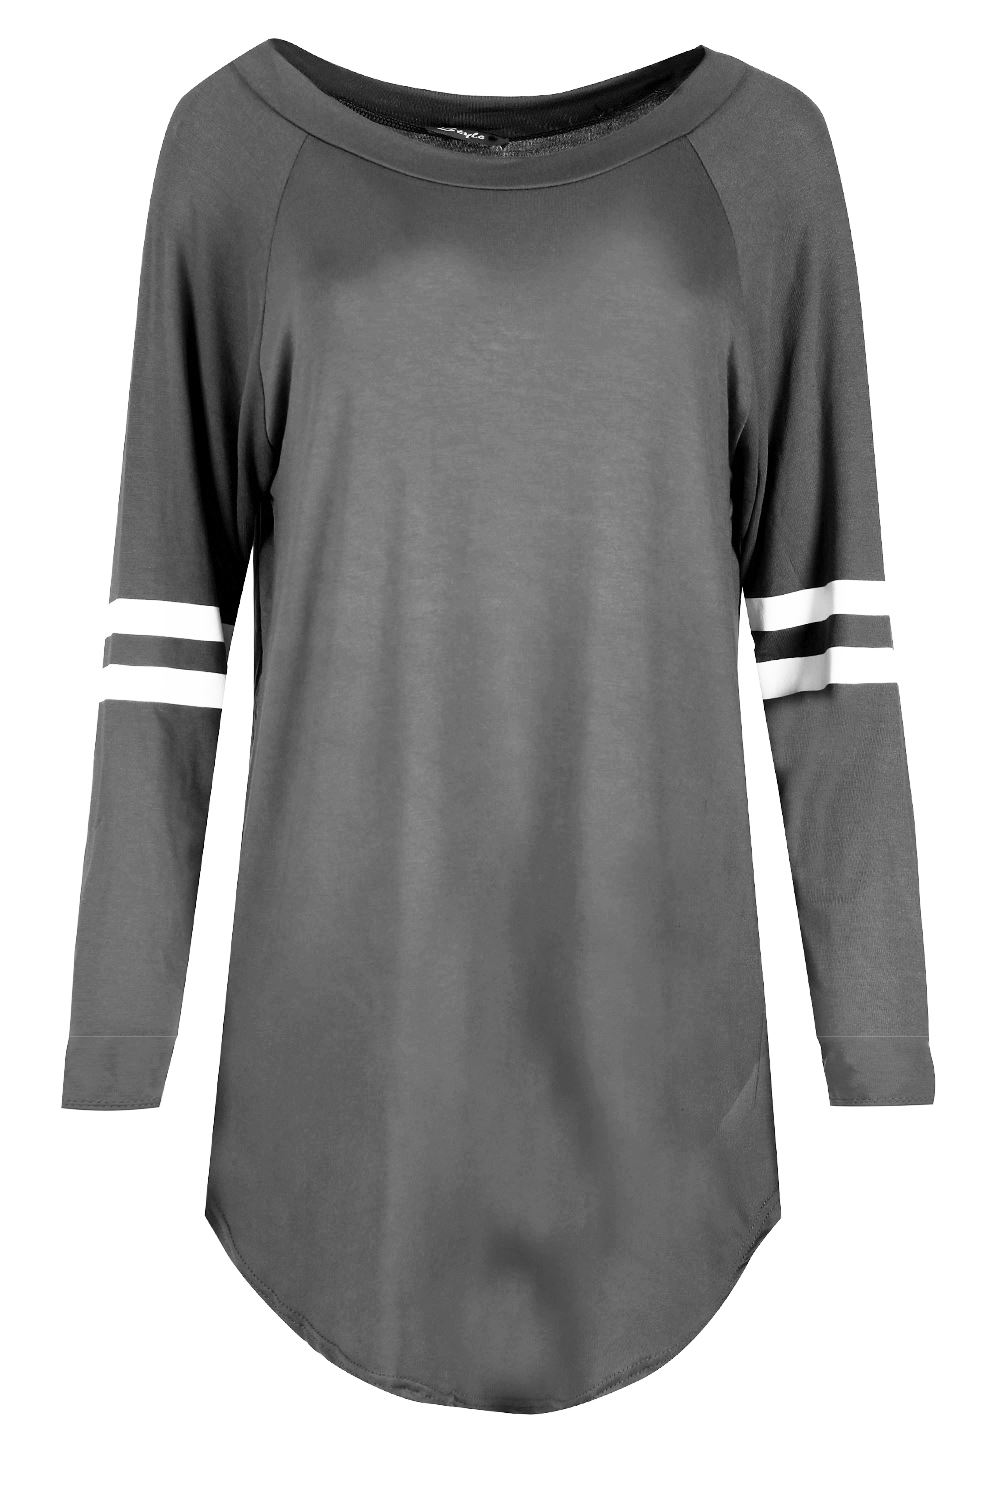 Find Long Sleeve Shirts at trueiupnbp.gq Enjoy free shipping and returns with NikePlus.